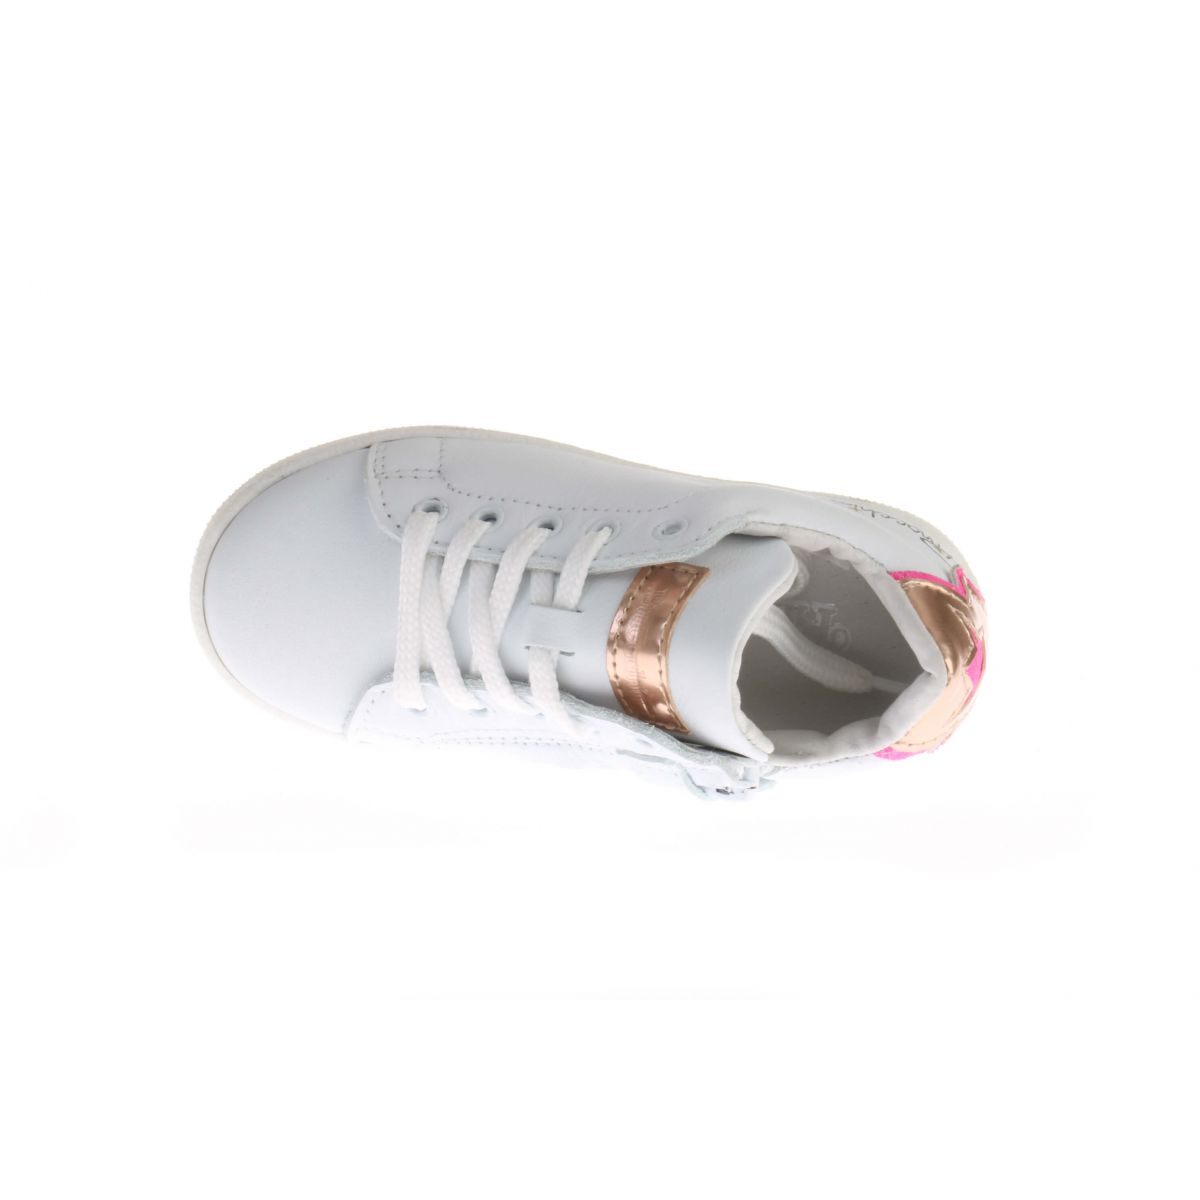 Pinocchio P1114 Sneaker Wit Brons Roze